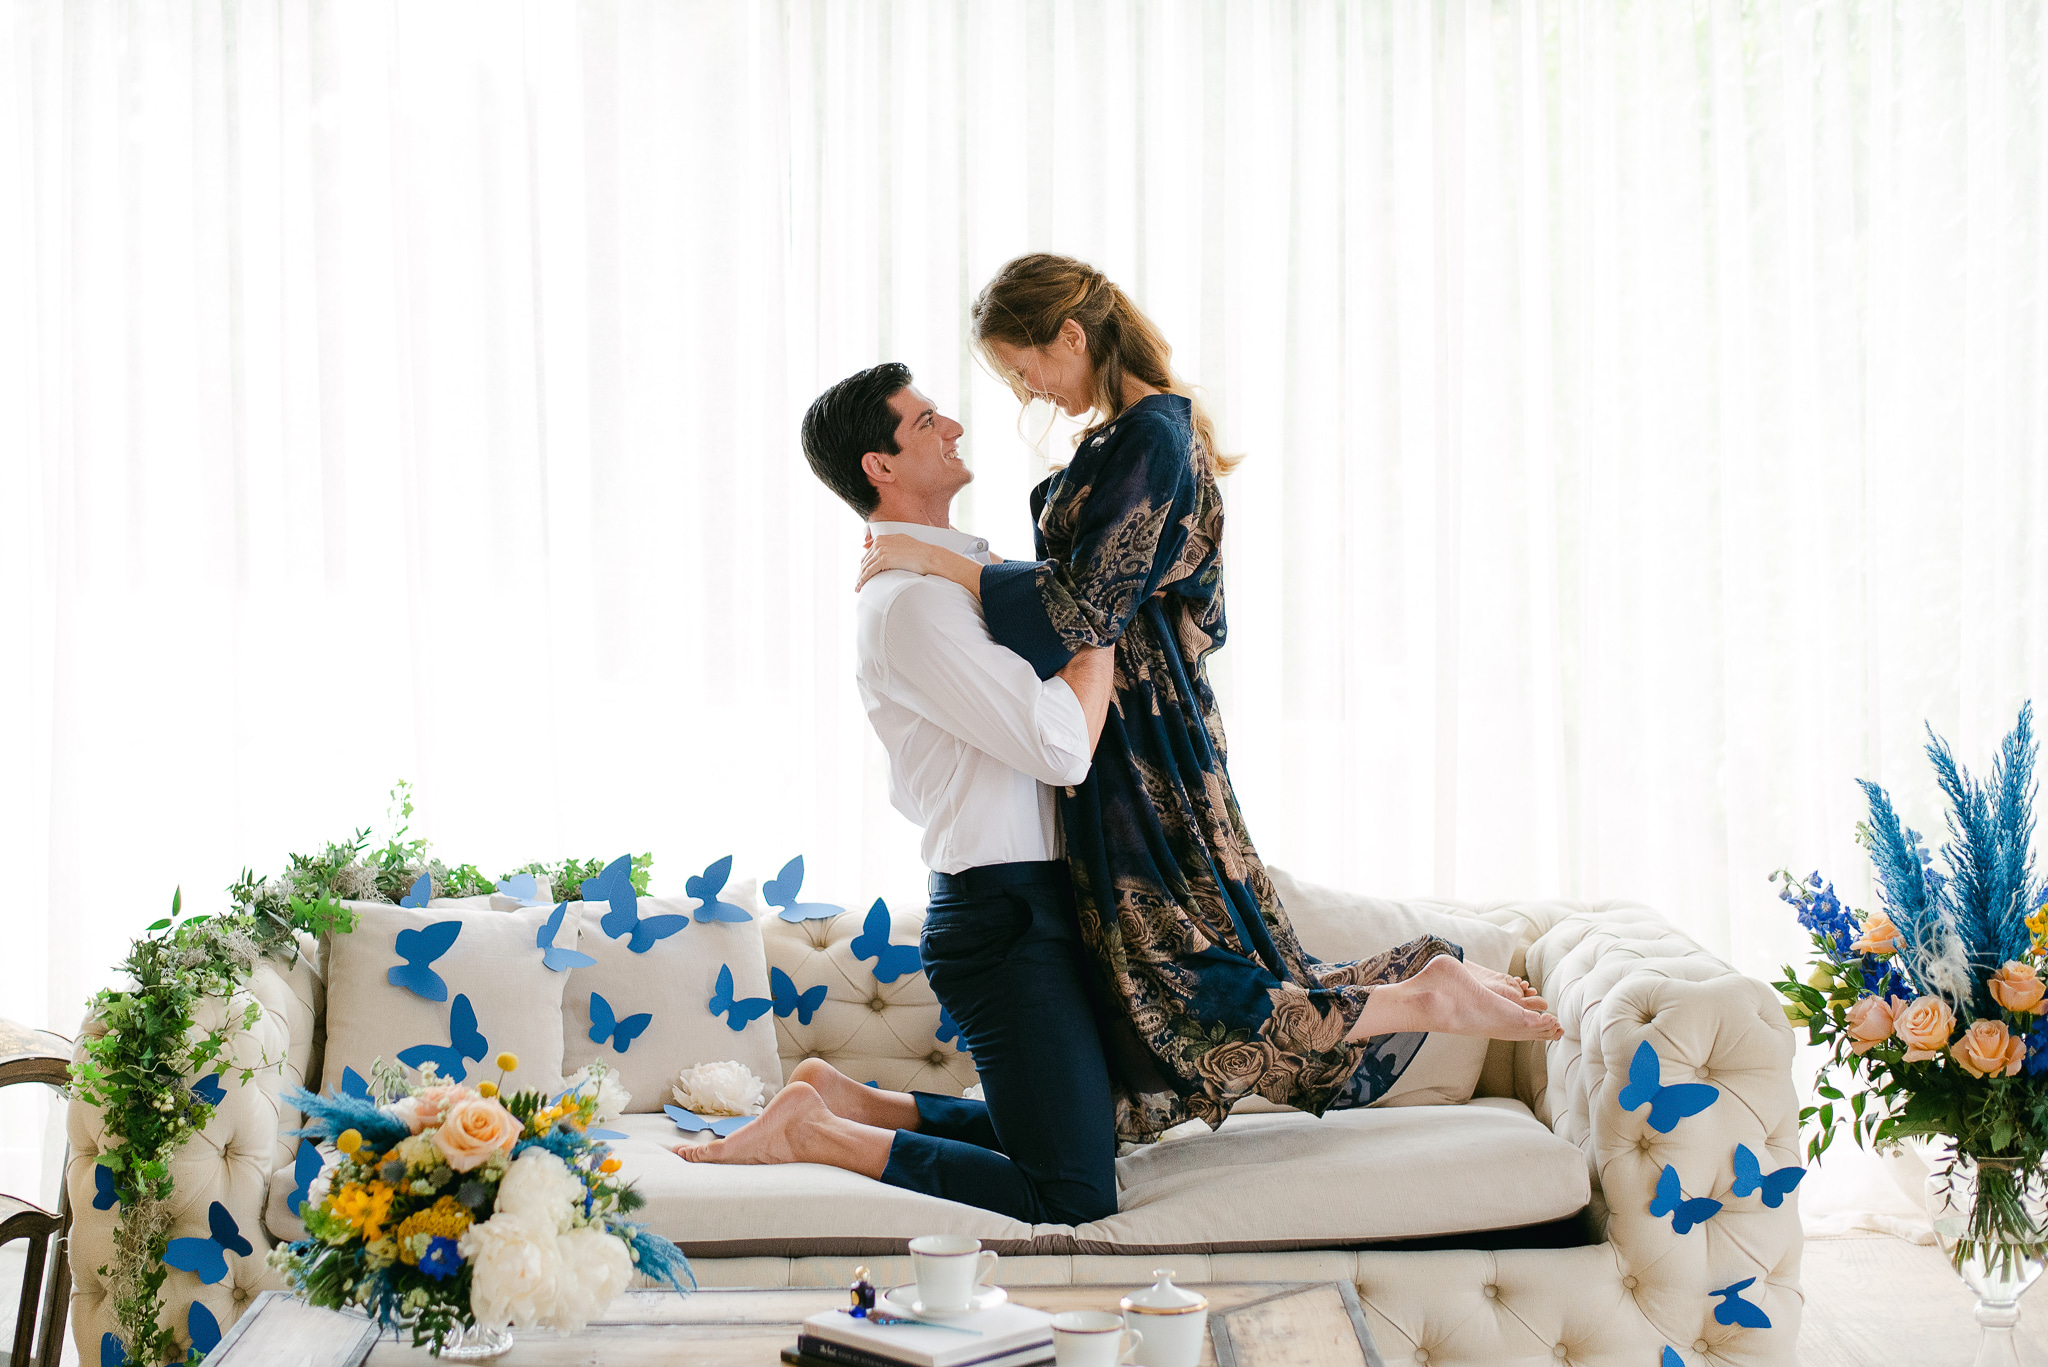 True Blue Luxury Wedding Inspiration Groom lifting the bride with joy on the couch decorated with butterflies